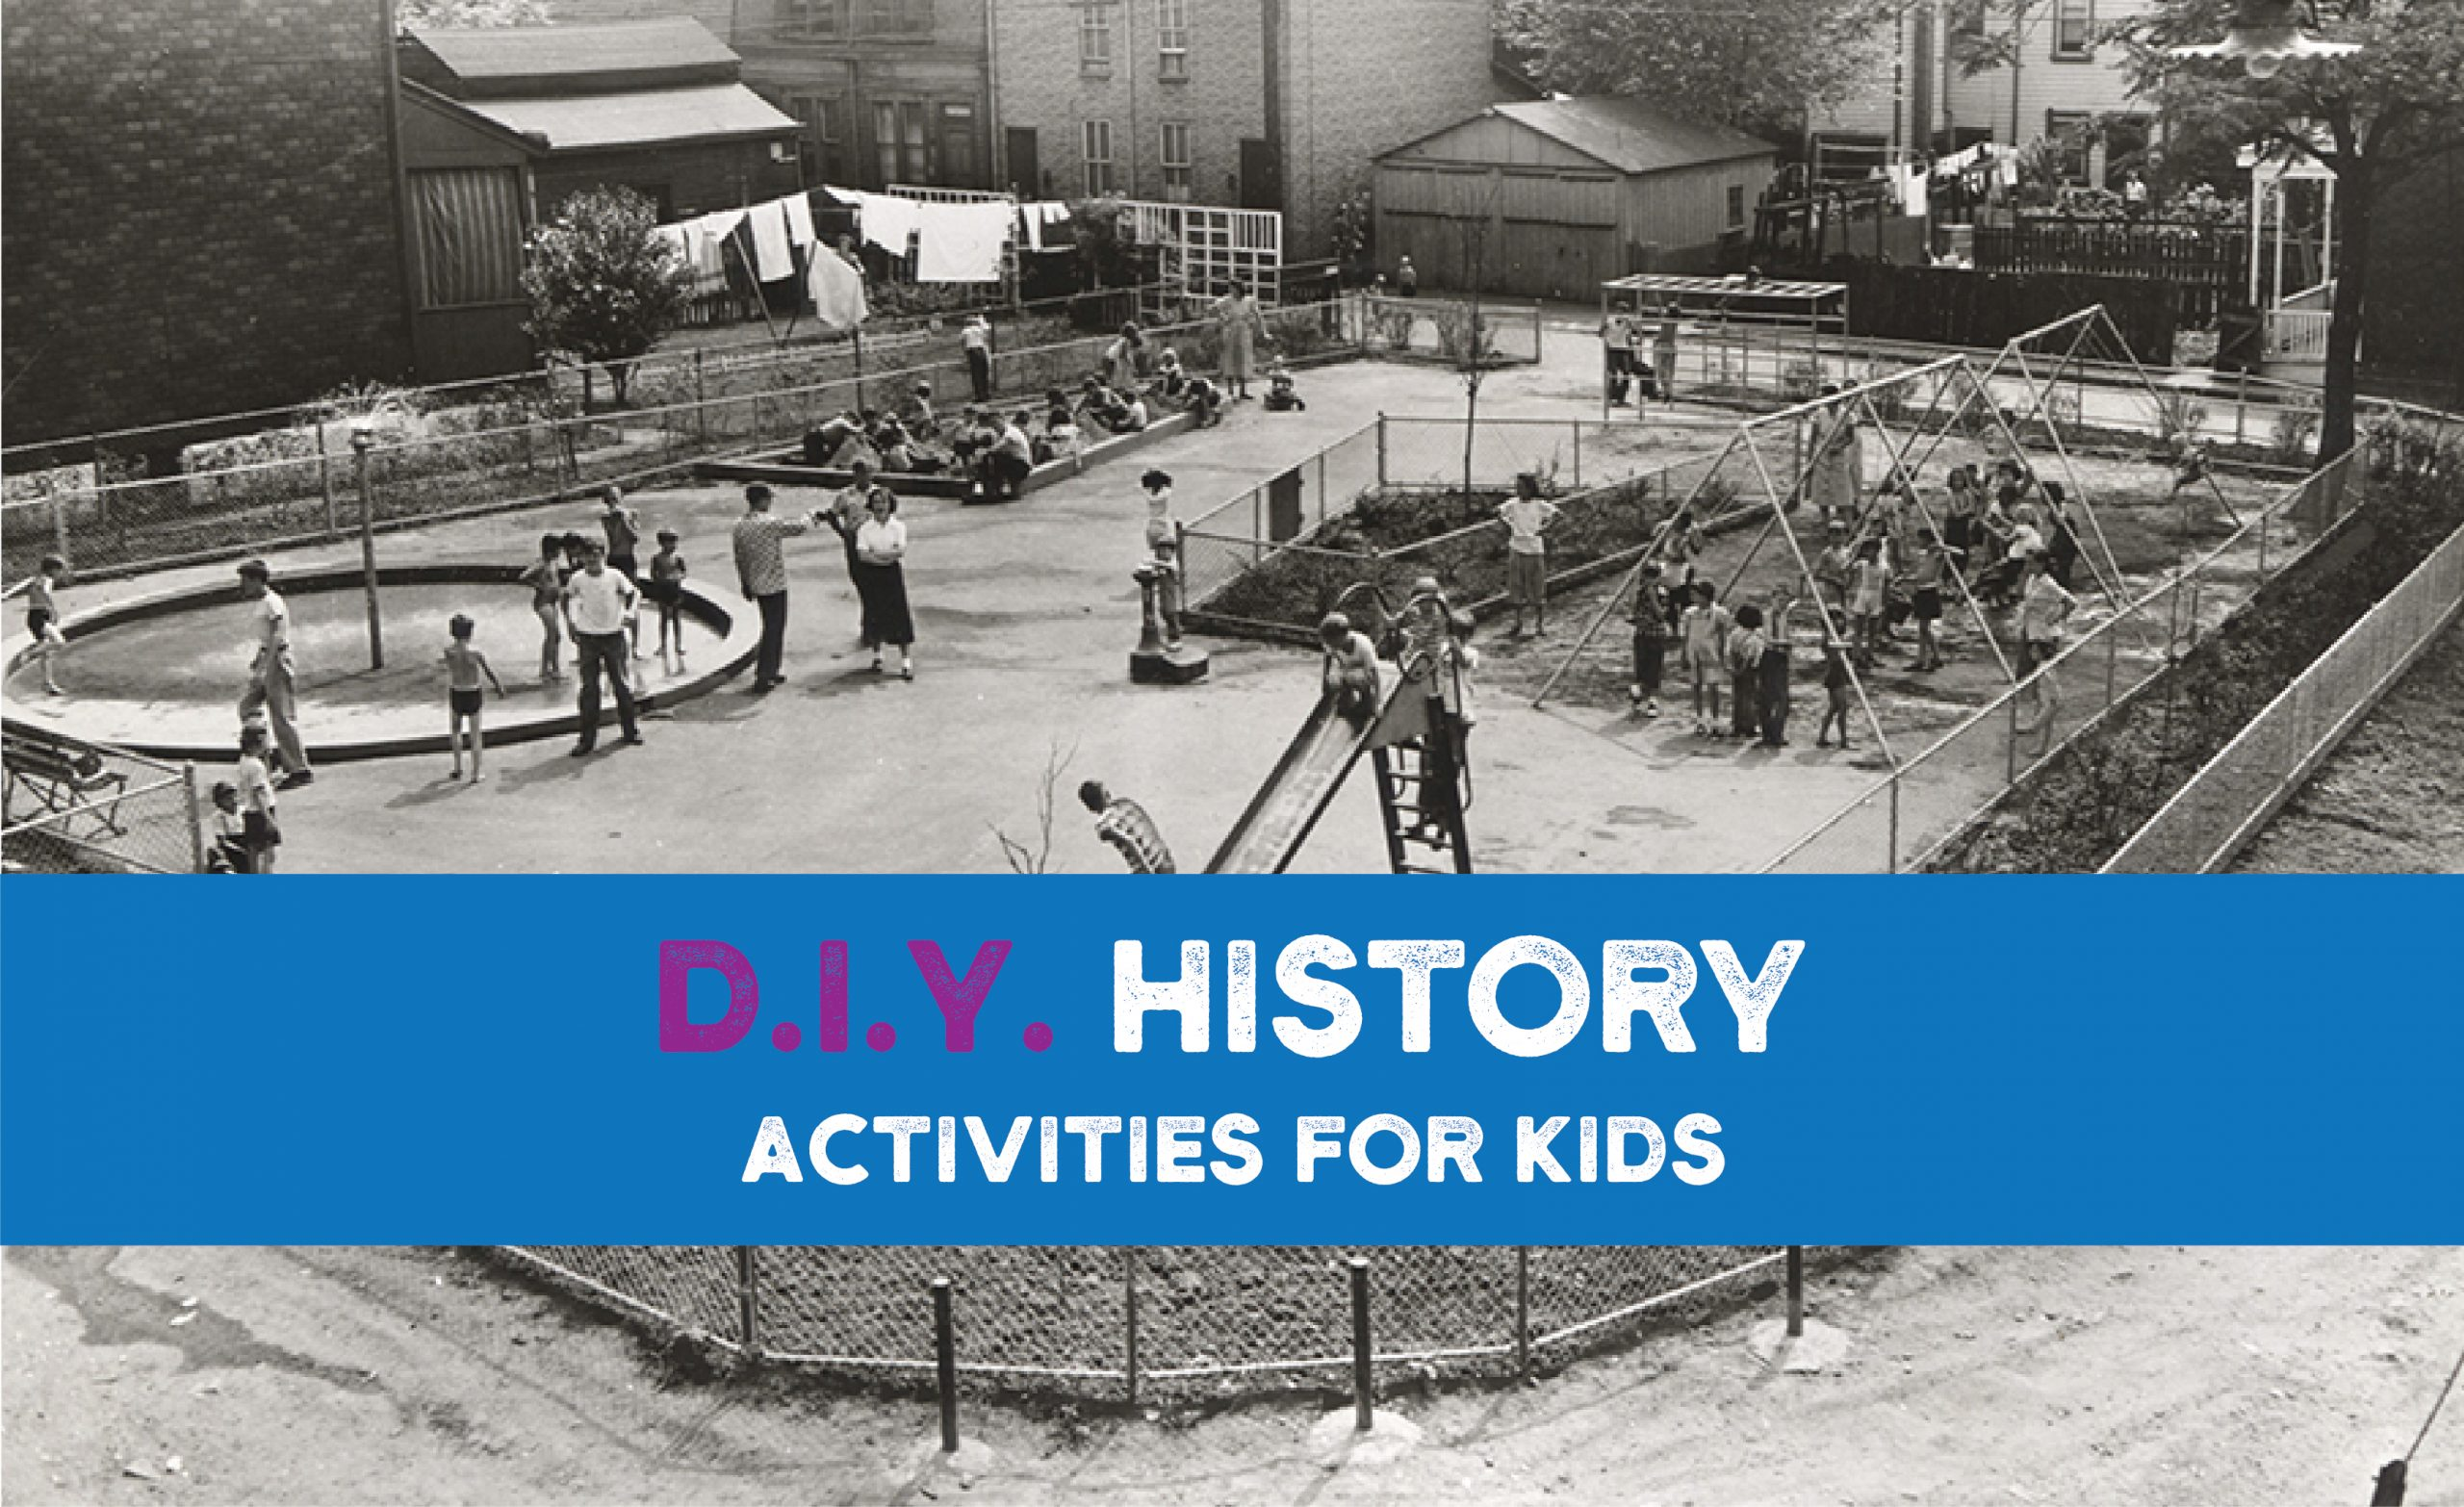 D.I.Y History: Activities for Kids